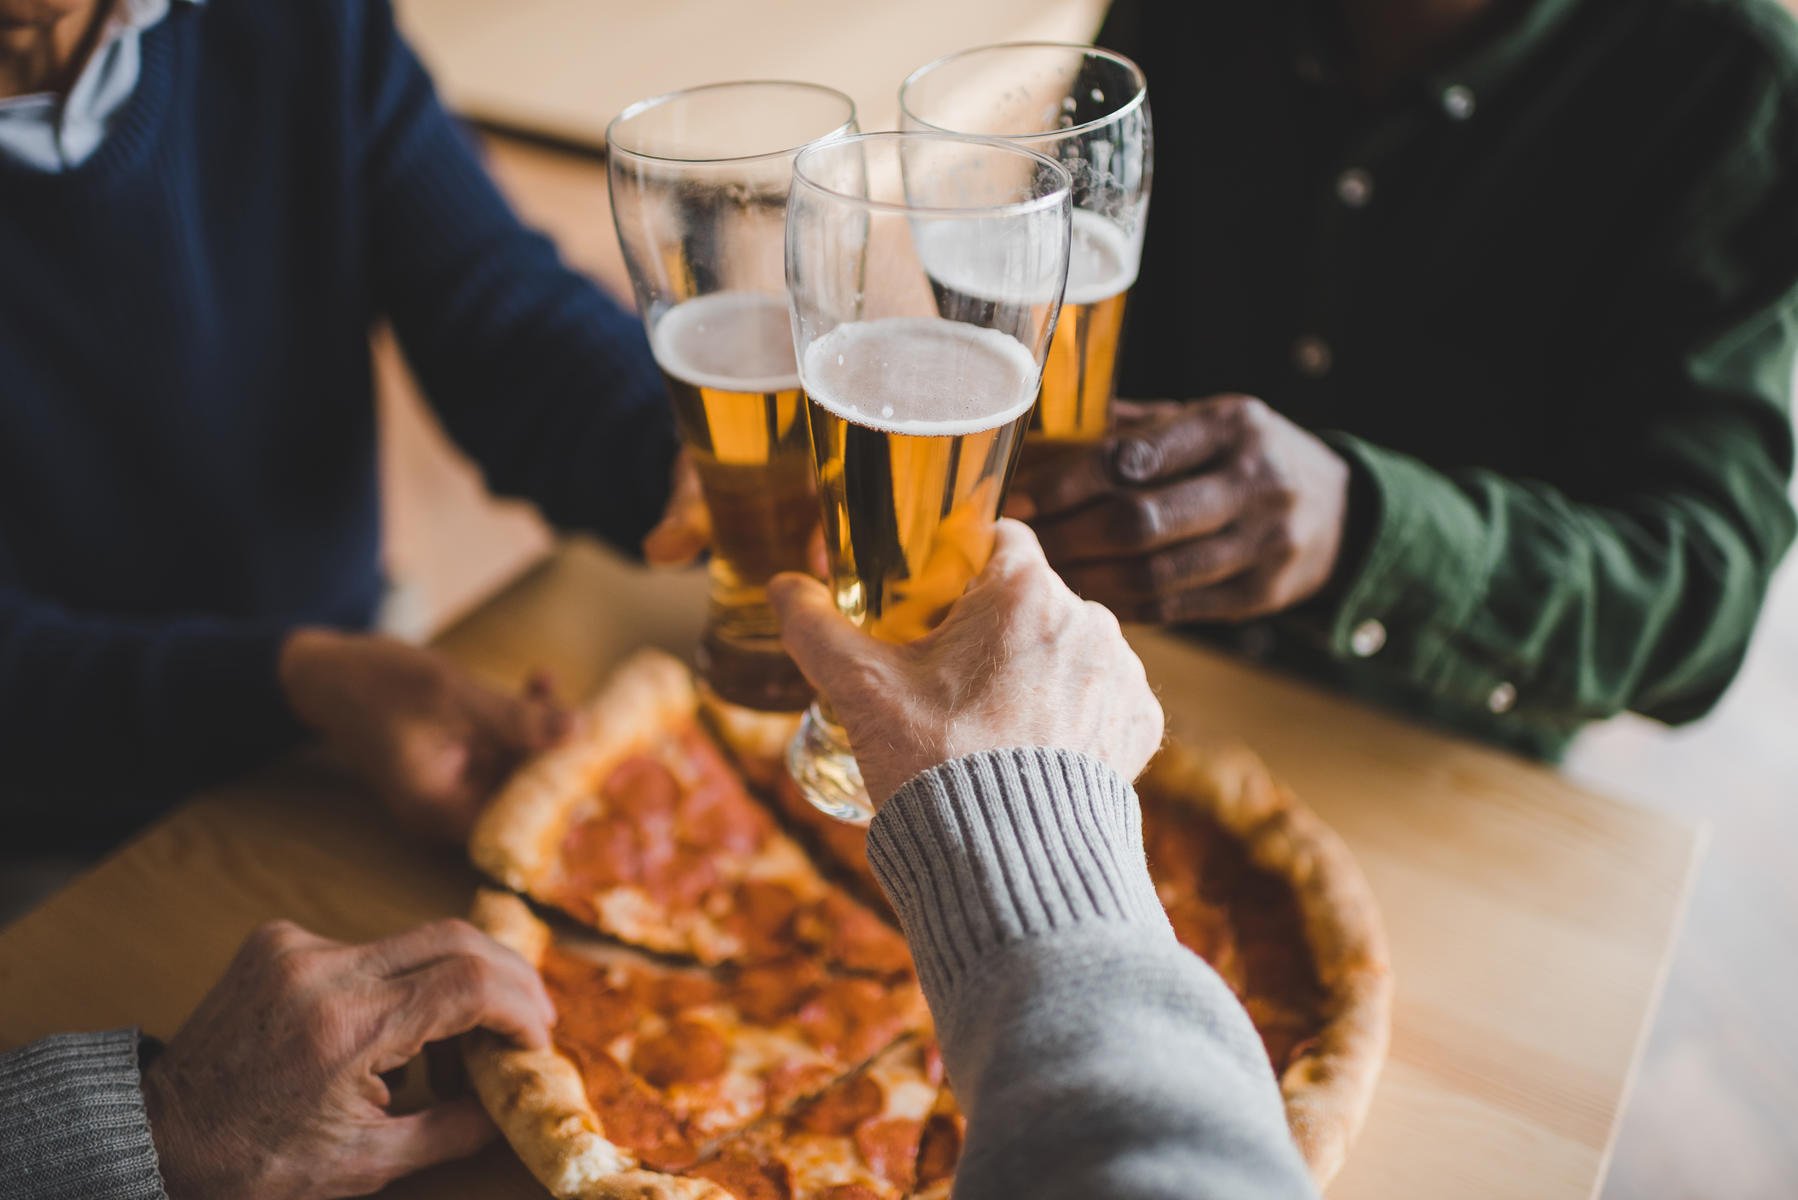 Pizza Hut Beer and Pizza Delivery